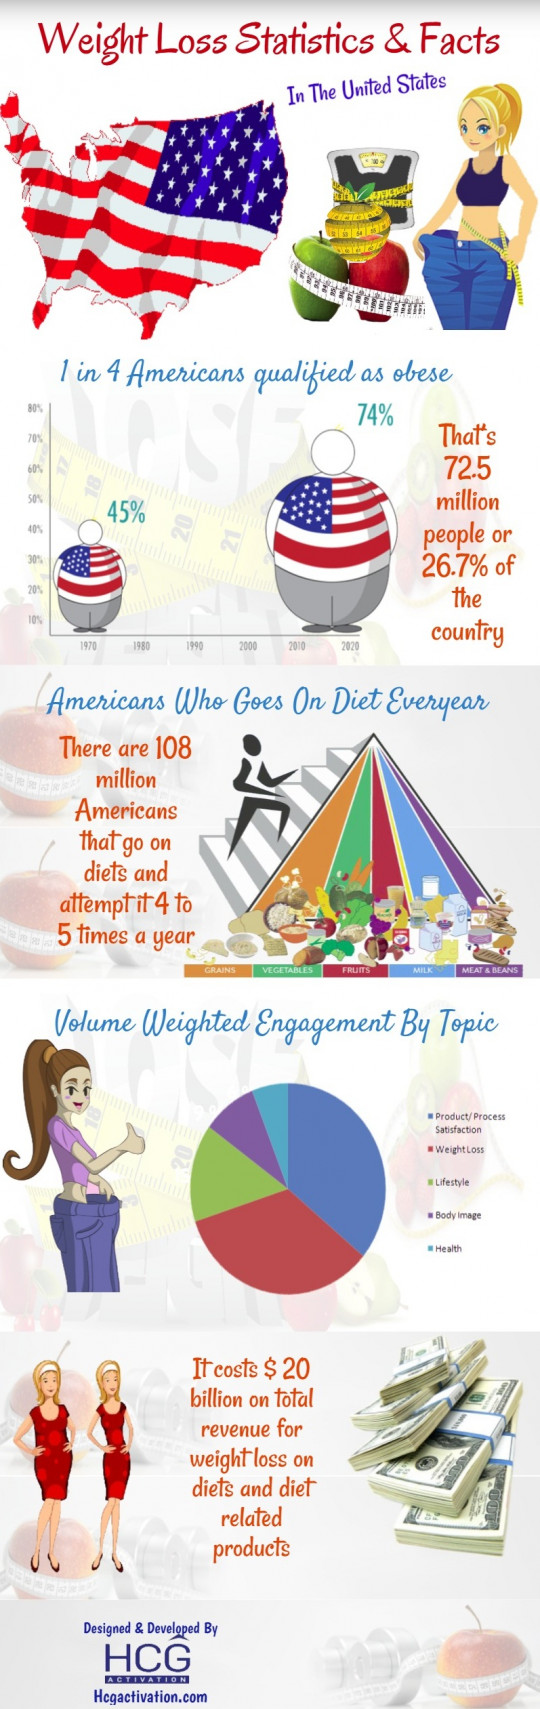 Weight Loss Statistics & Facts In United States